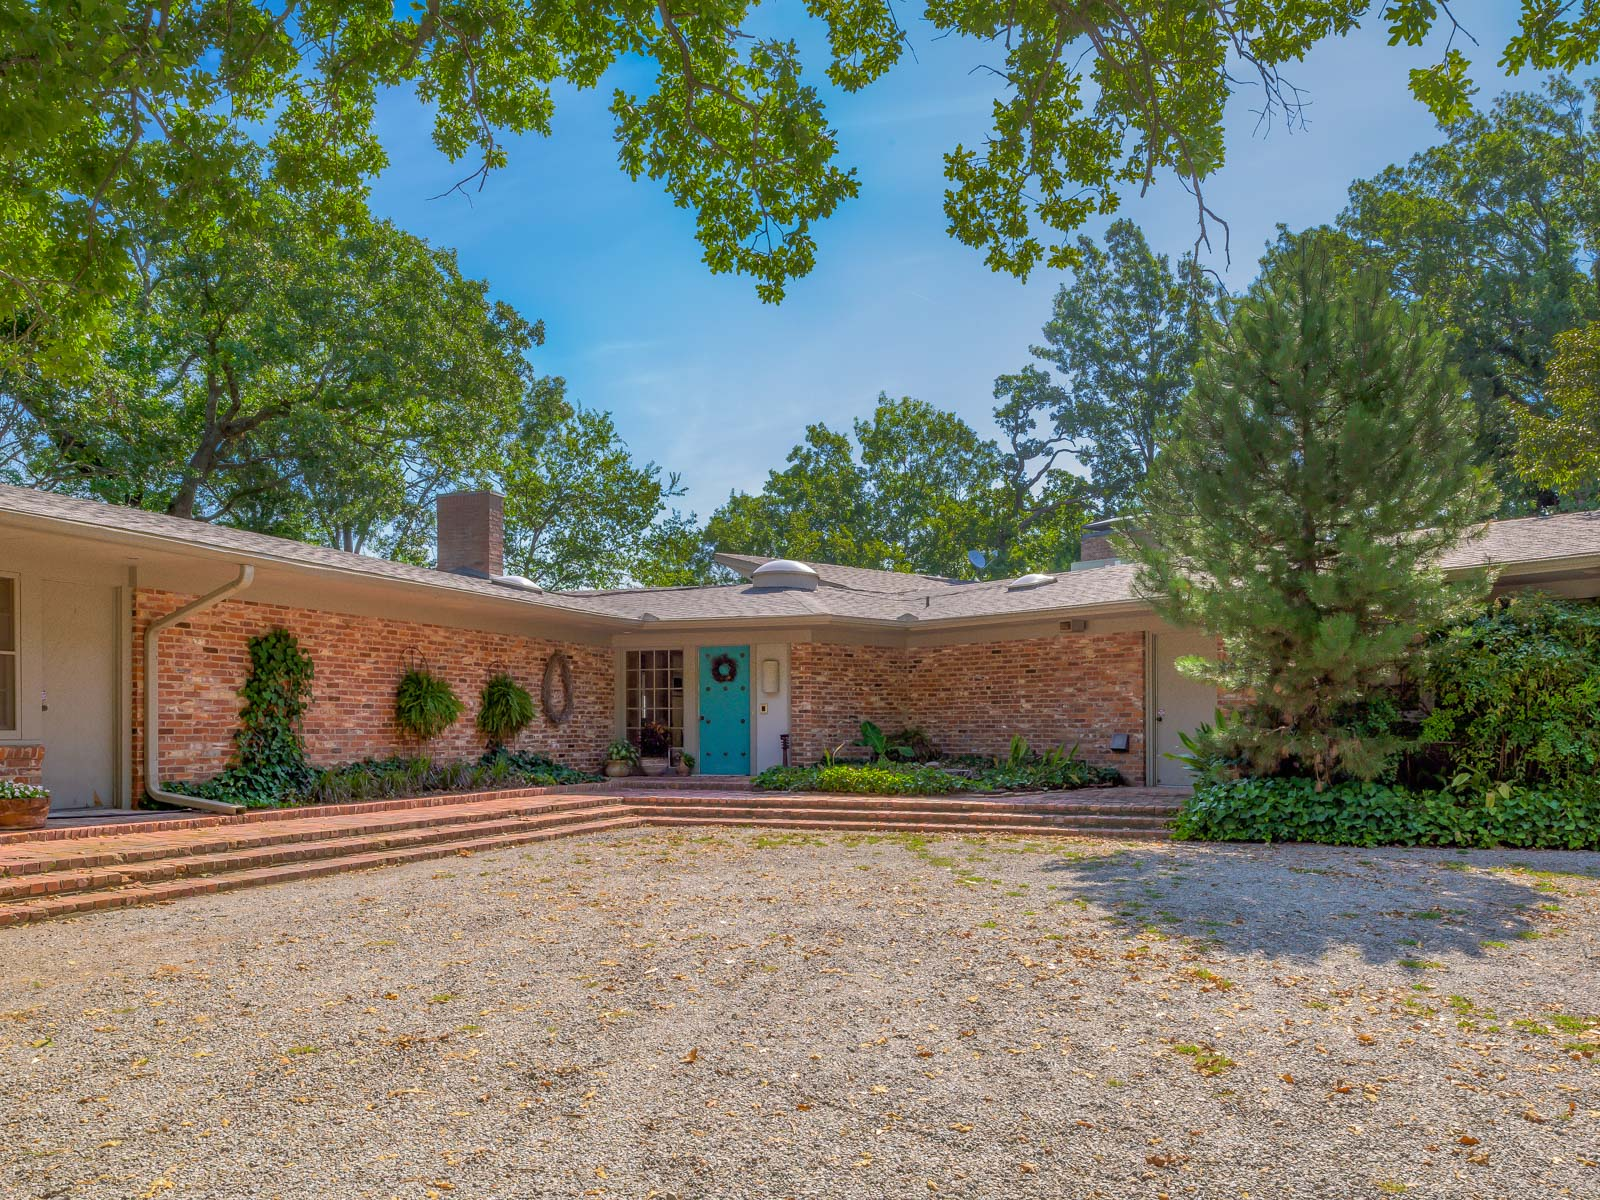 Single Family Home for Sale at Bud Oglesby Design at Lake Texoma 472 Kirk Avenue Pottsboro, Texas 75076 United States